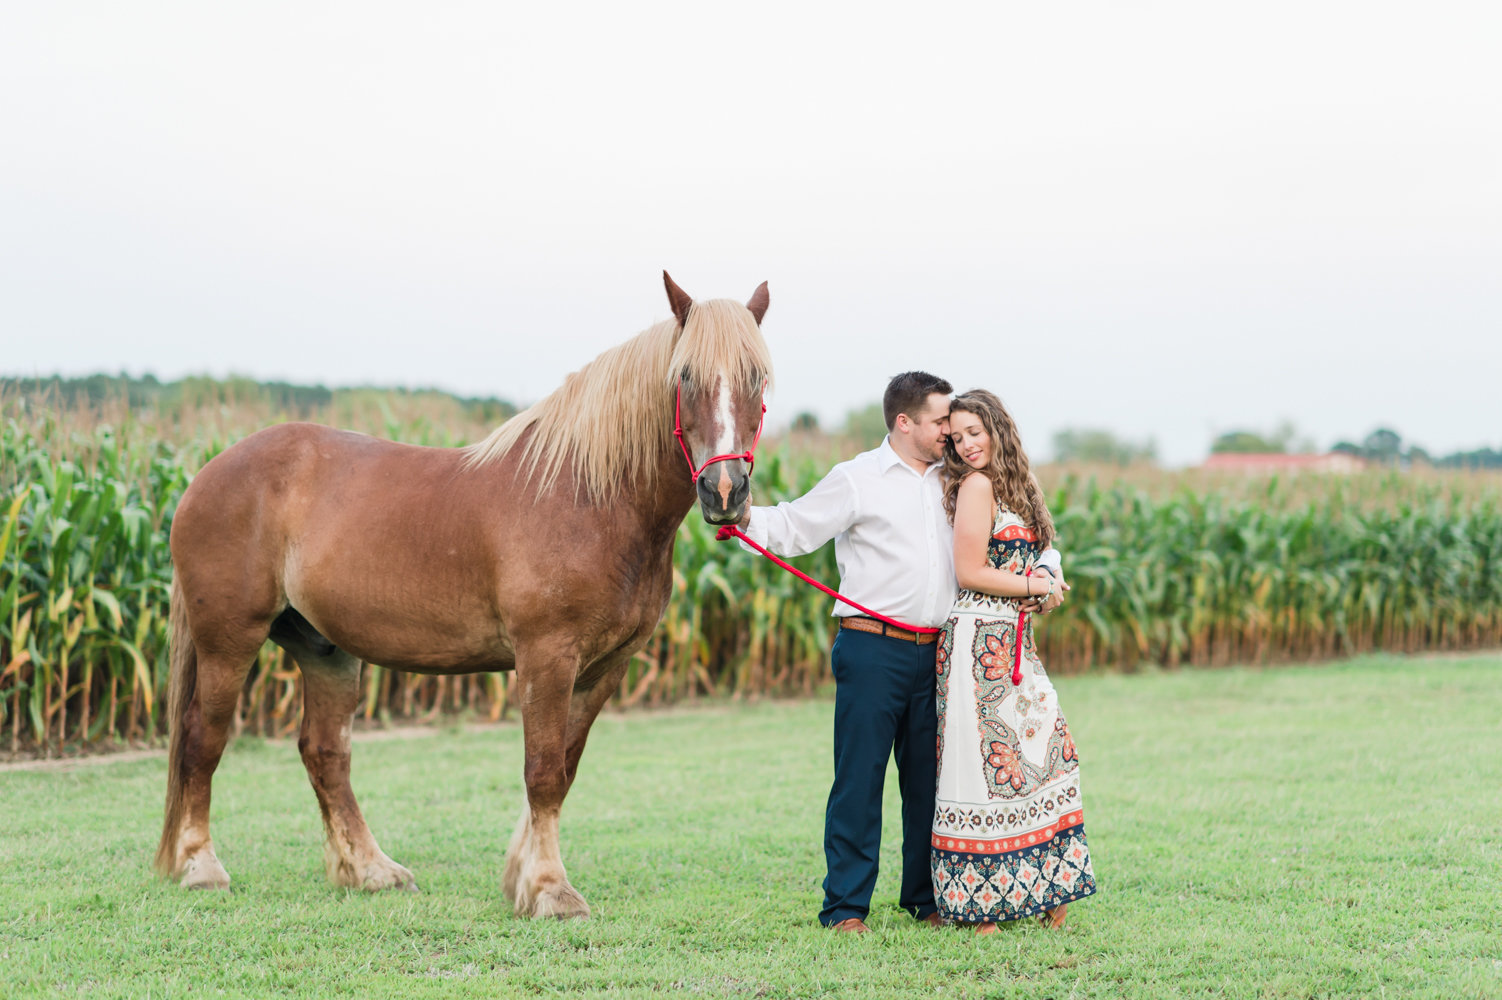 engagement-portraits-christina-forbes-photography-48